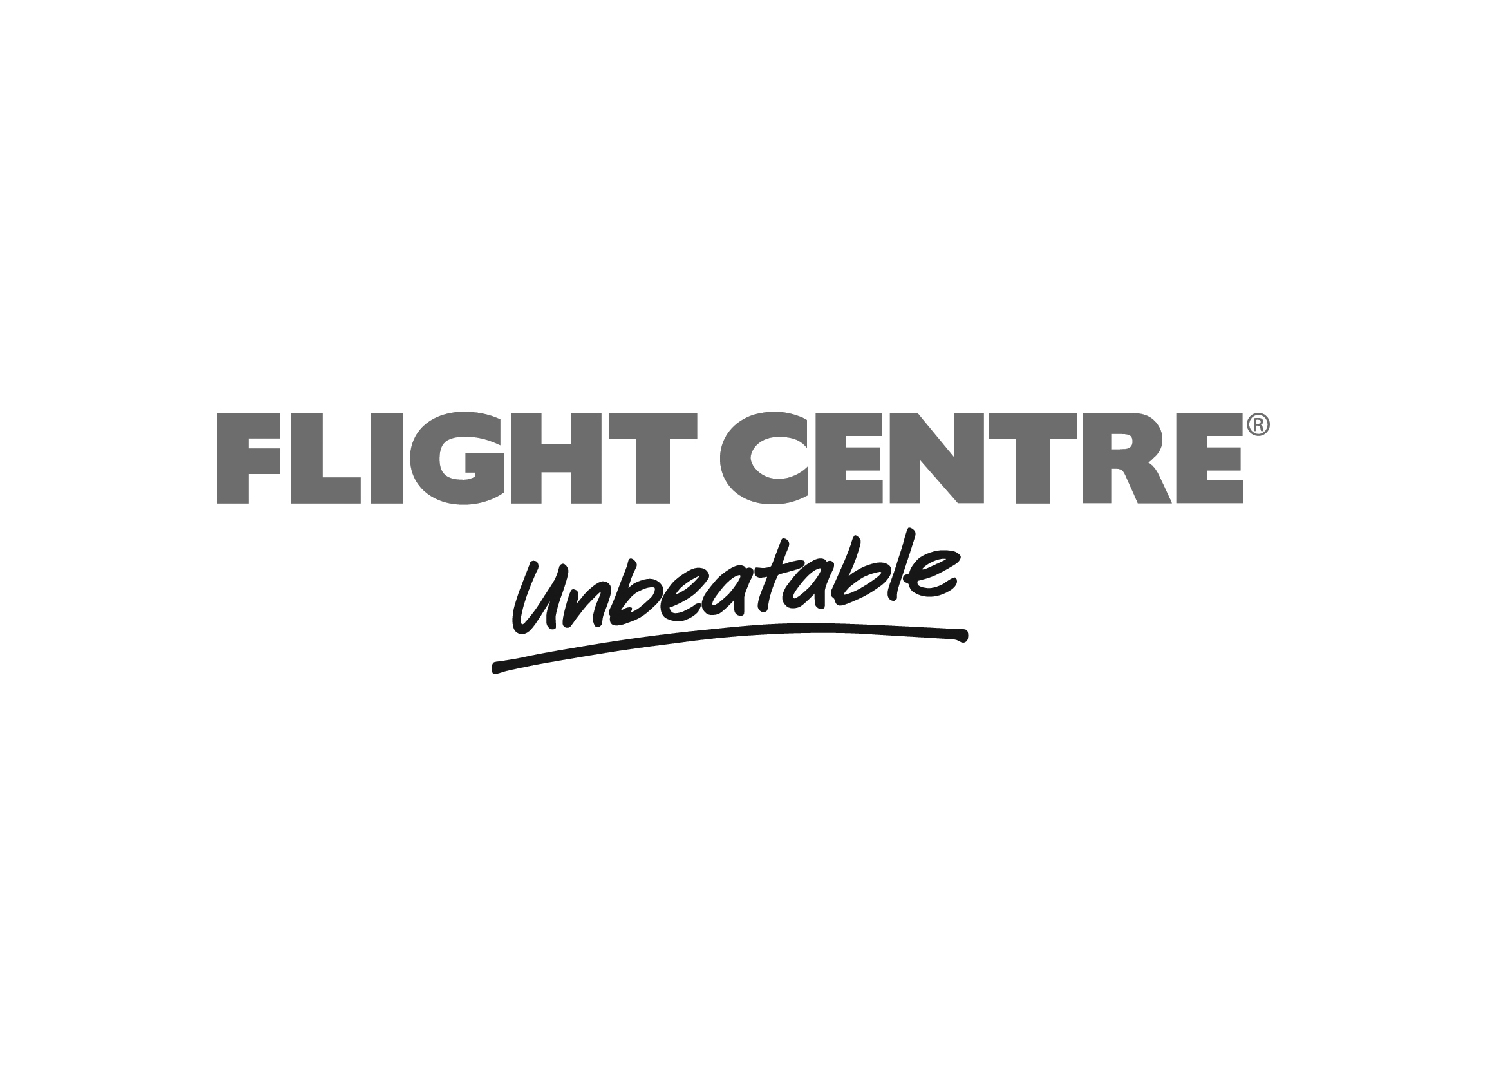 Flight Centre-01.jpg